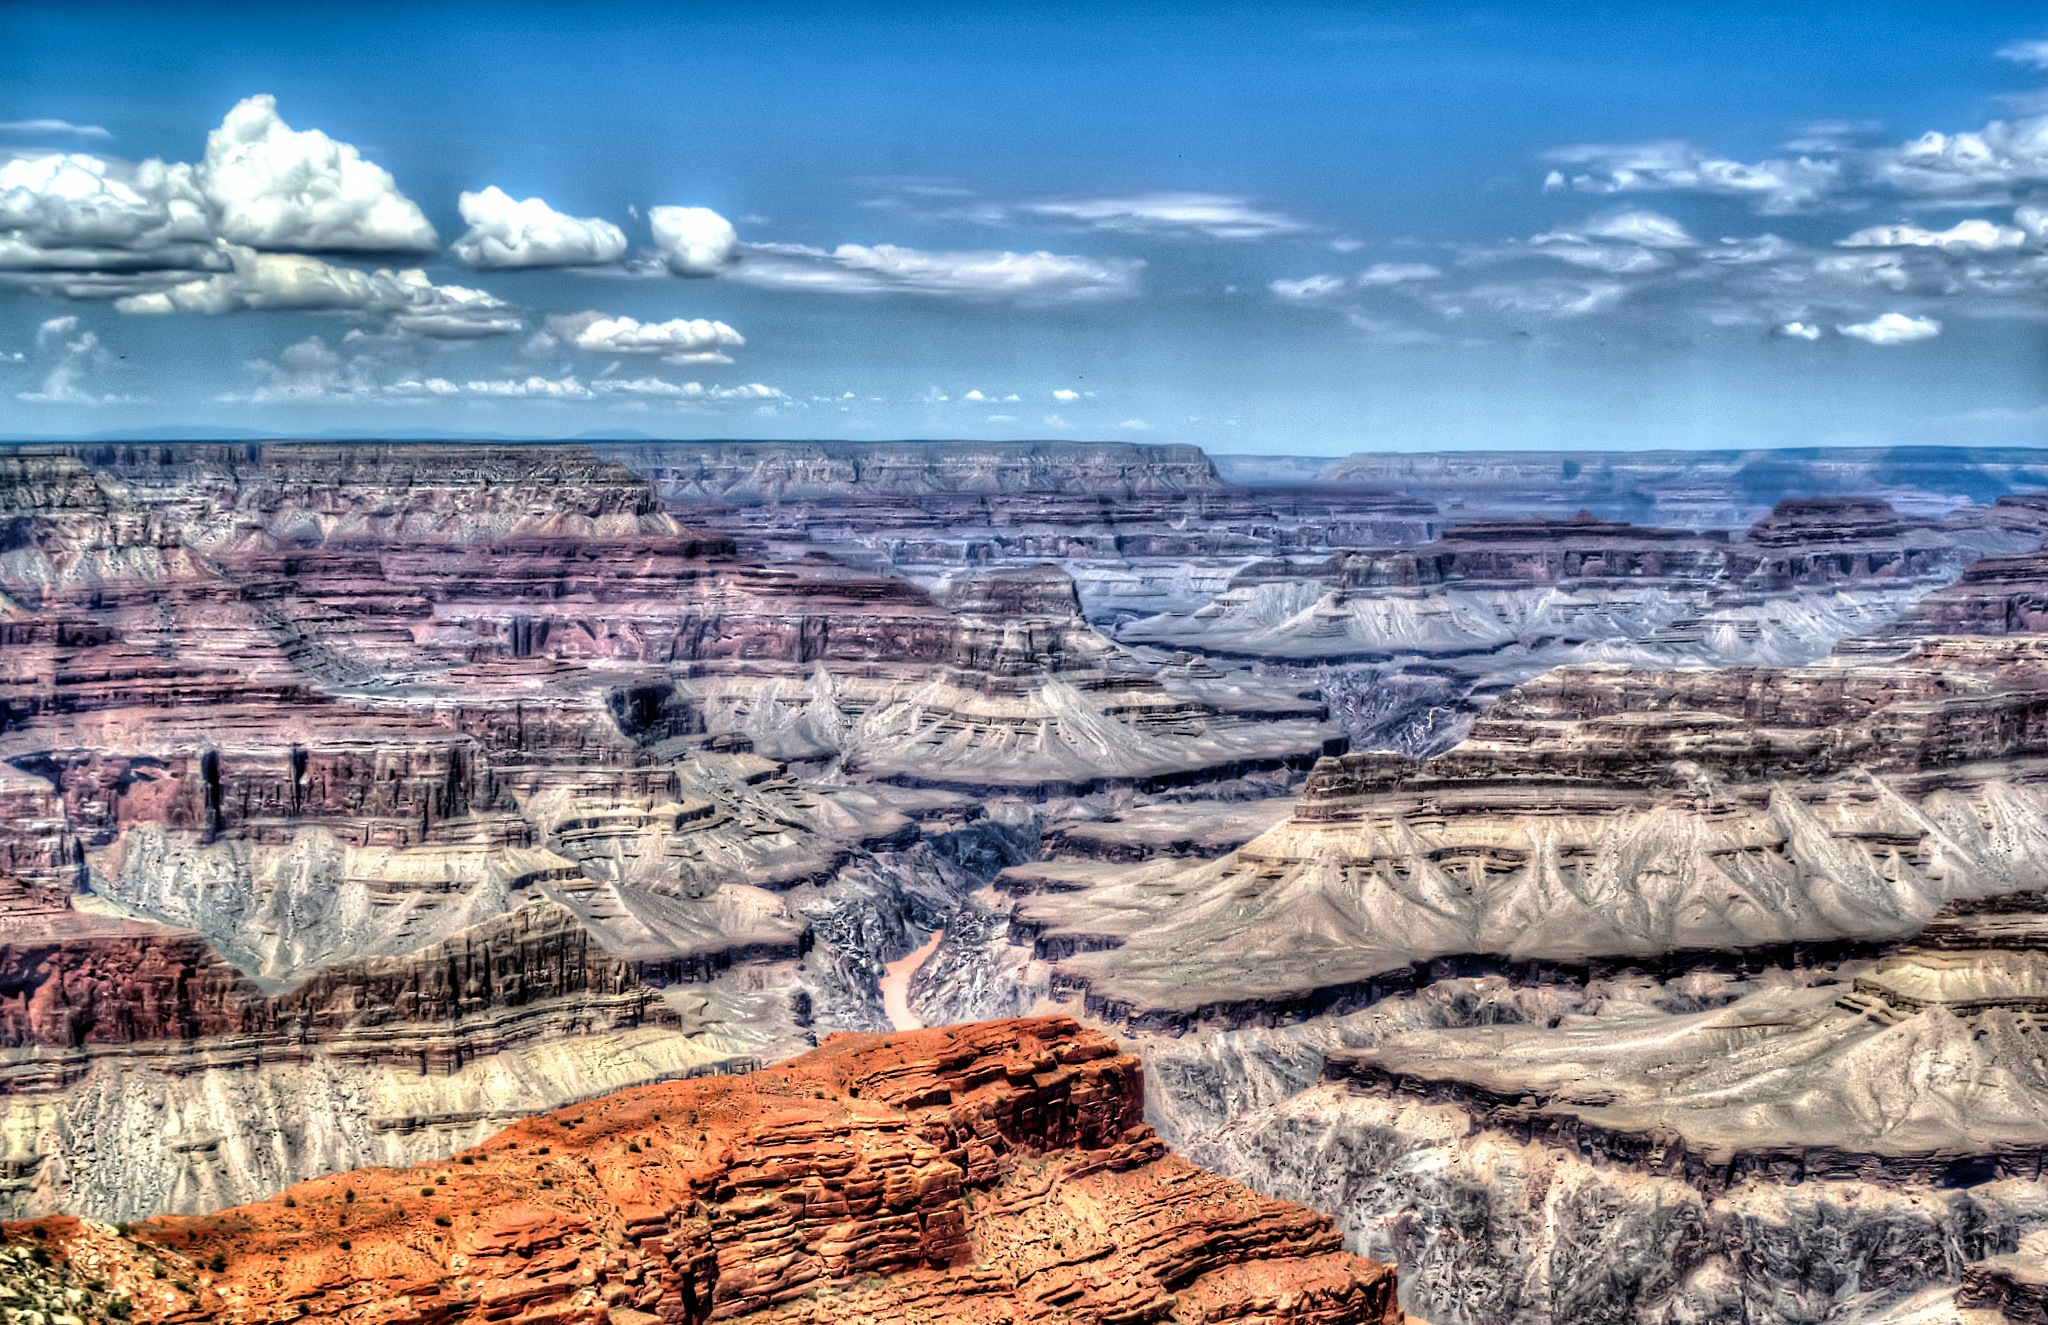 The Grand Canyon by Paul Deveau